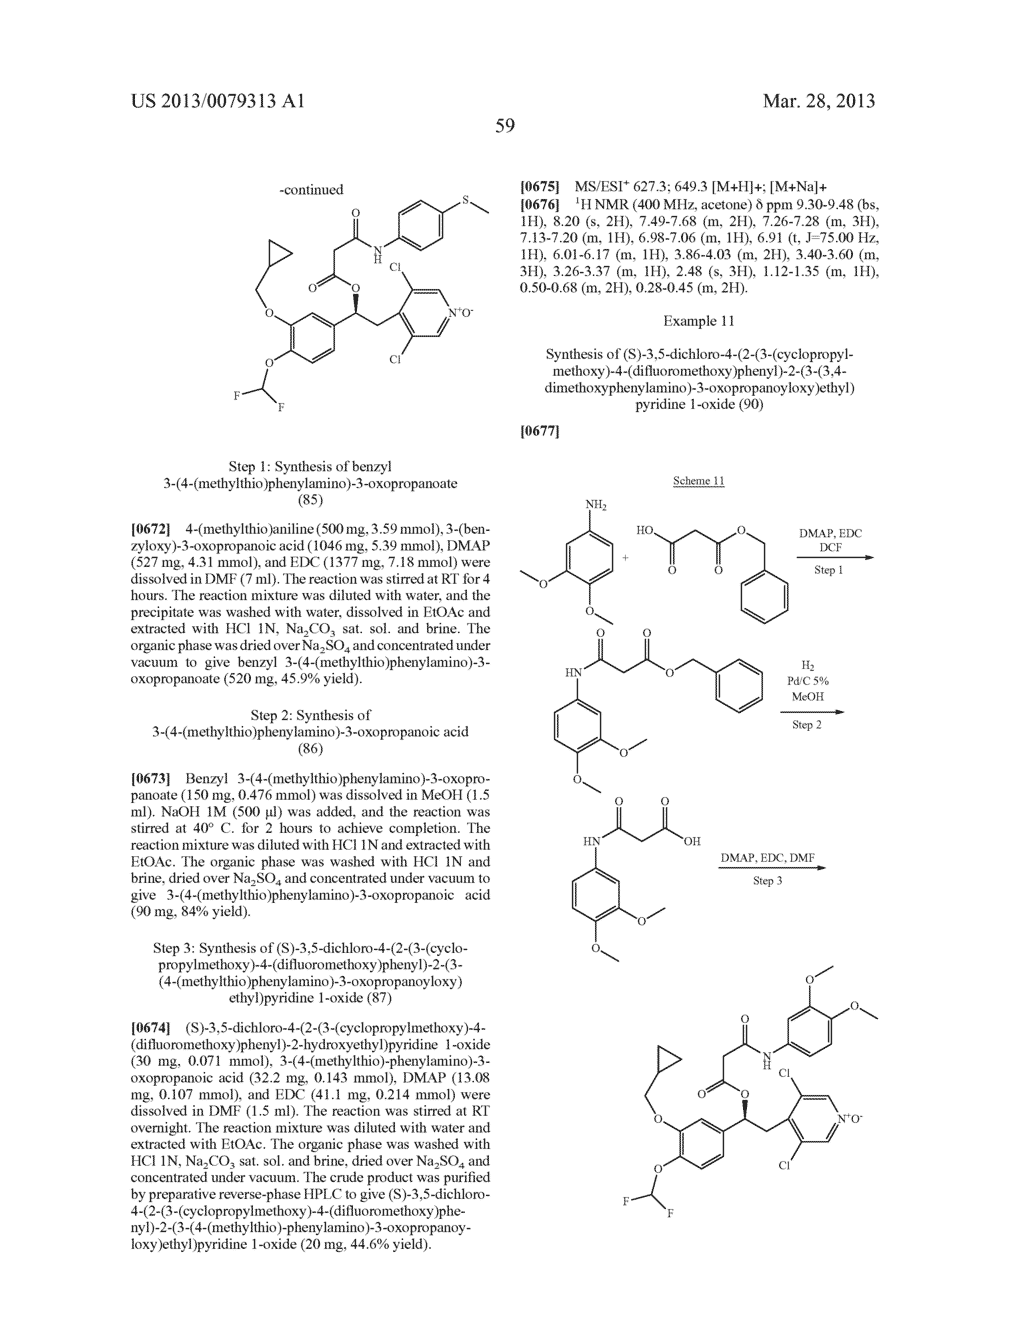 DERIVATIVES OF 1-PHENYL-2-PYRIDINYL ALKYL ALCOHOLS AS PHOSPHODIESTERASE     INHIBITORS - diagram, schematic, and image 60